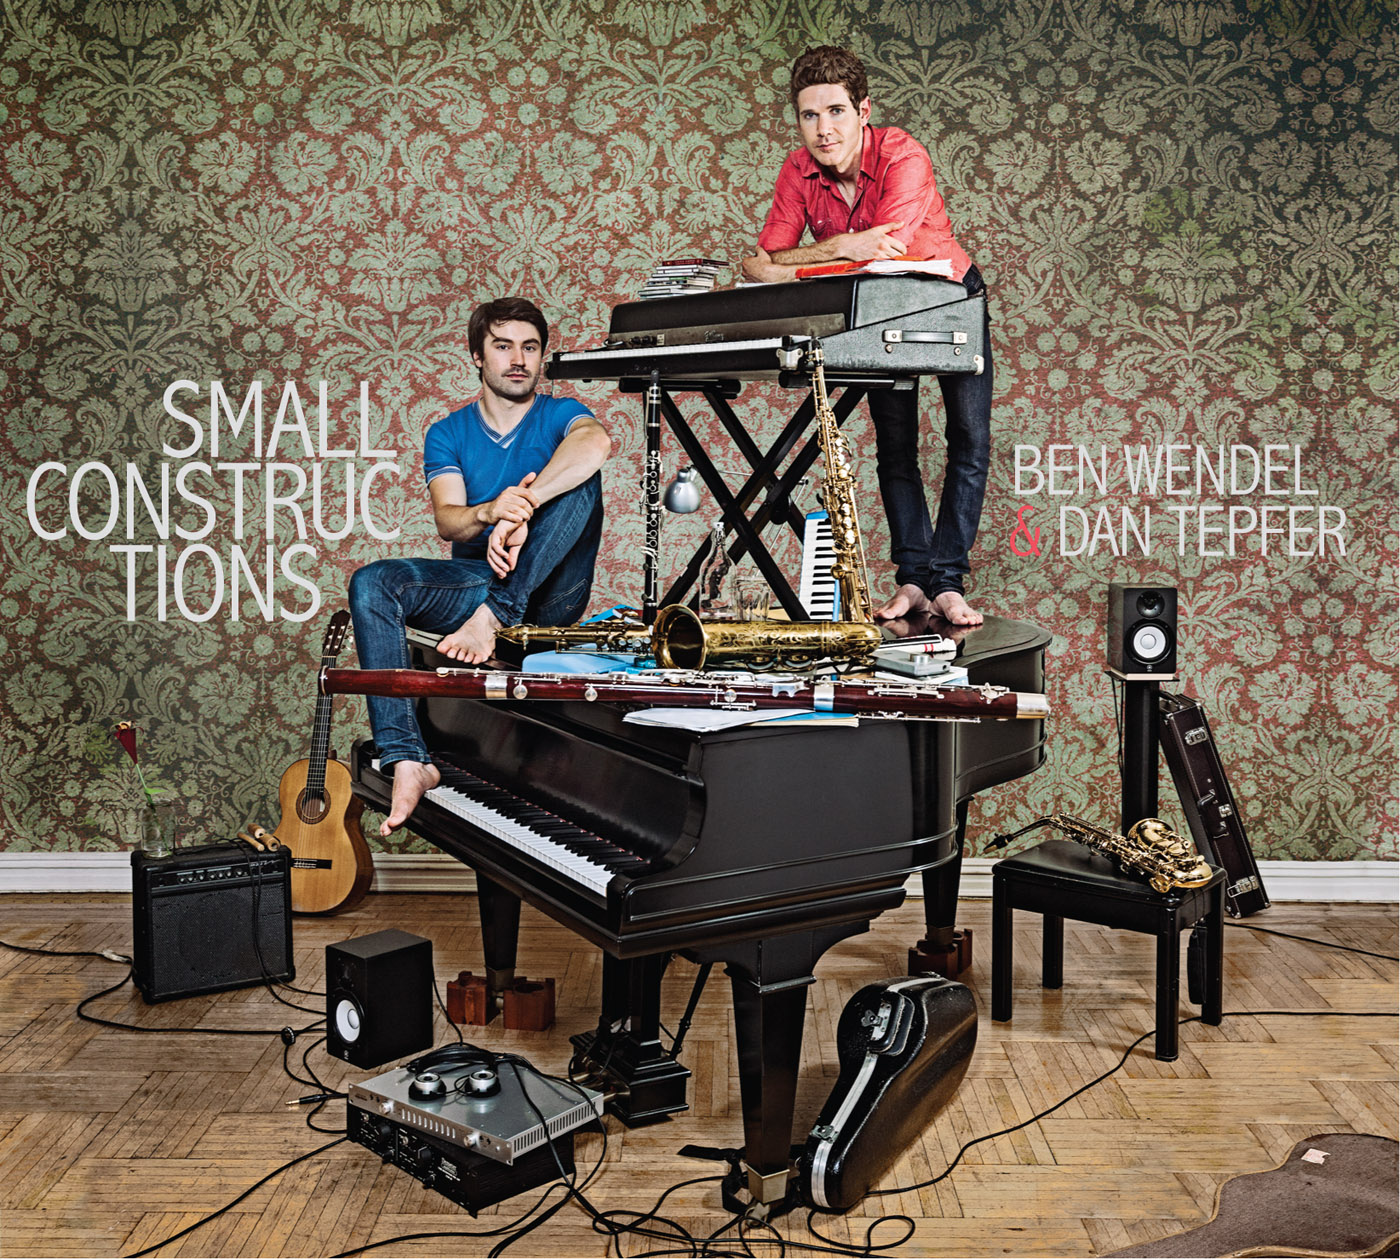 Small Constructions by Dan Tepfer & Ben Wendel cover